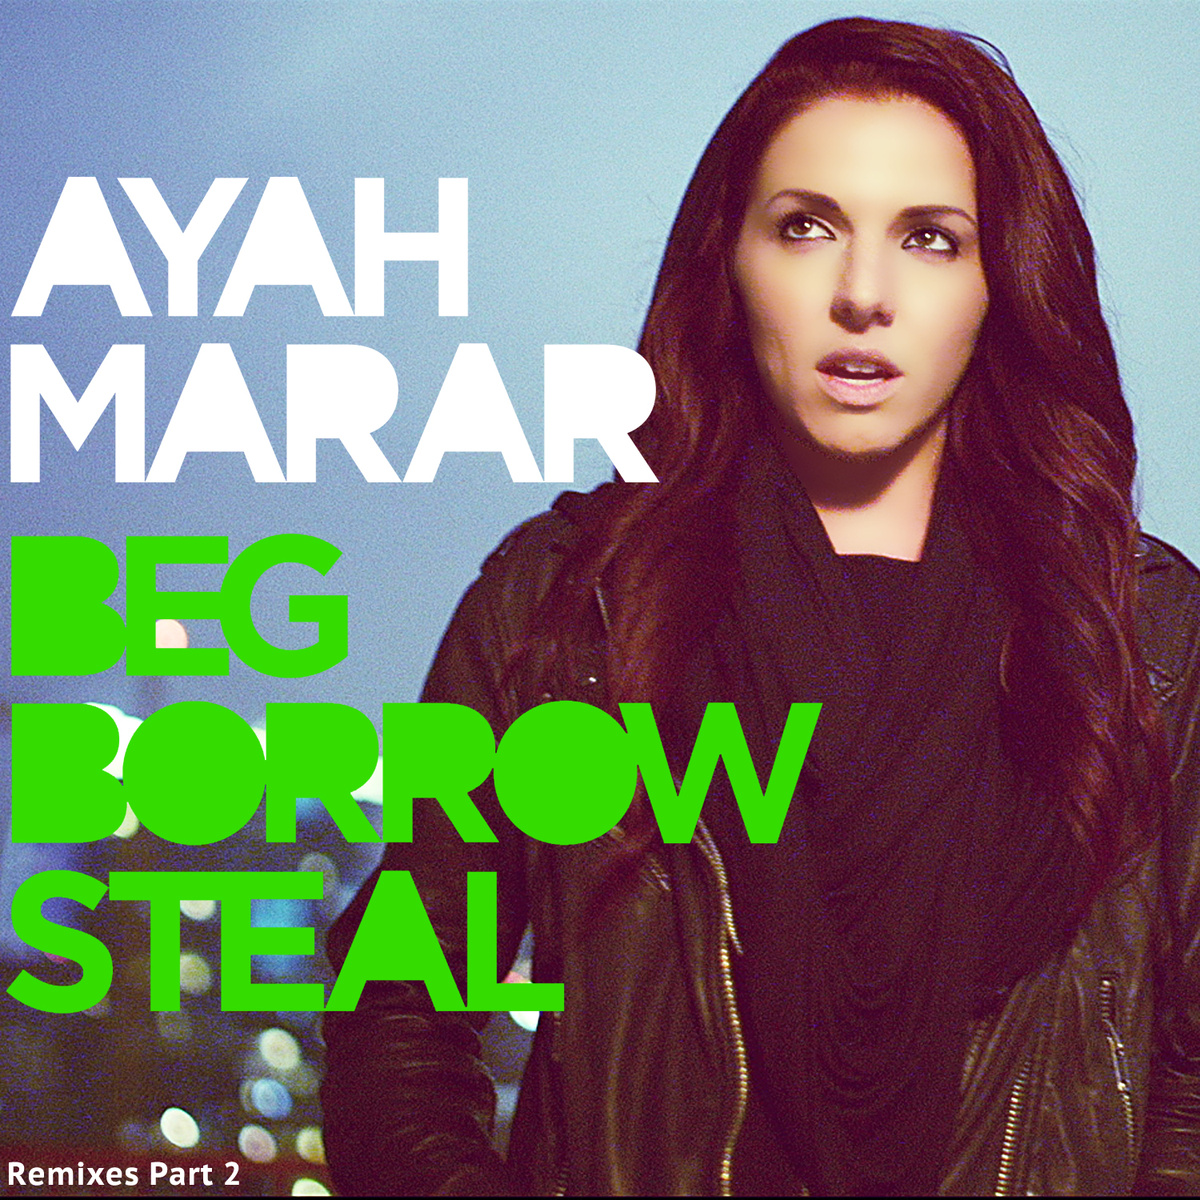 Ayah Marar – Beg Borrow Steal (DJ Wax Remix)